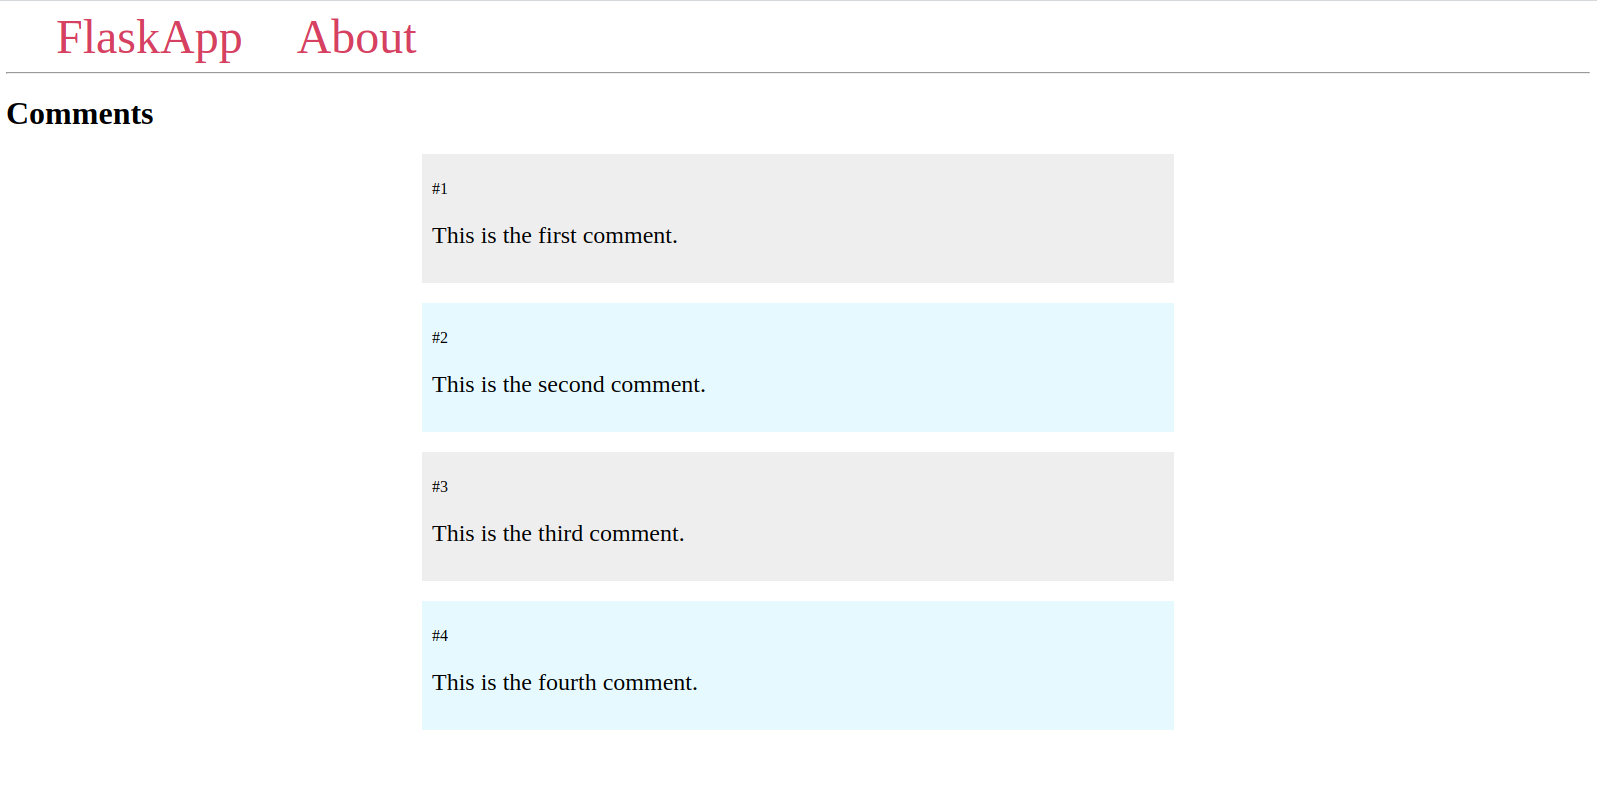 Comments Page With Alternating Background Colors